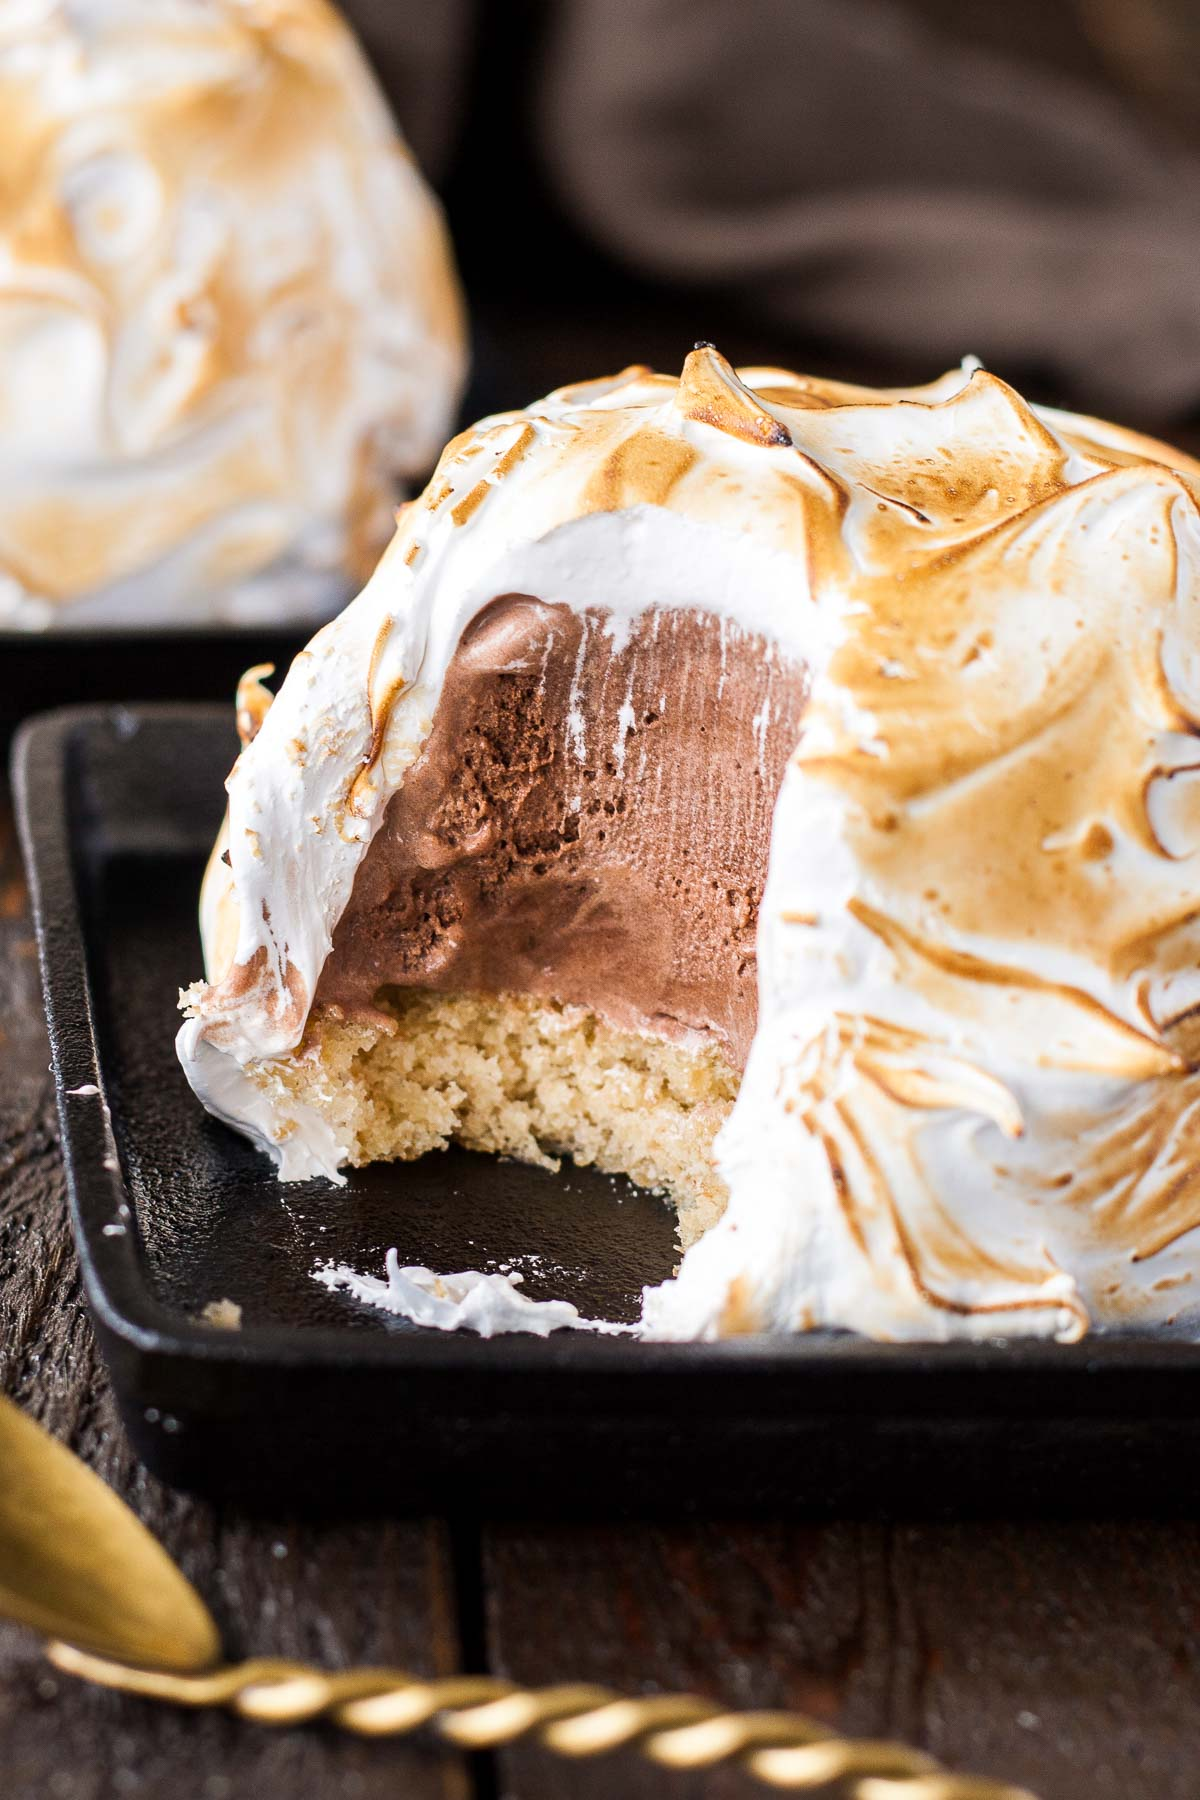 A modern day version of an old classic. This S'mores Baked Alaska combines a fun retro dessert with your favourite campfire treat. | livforcake.com